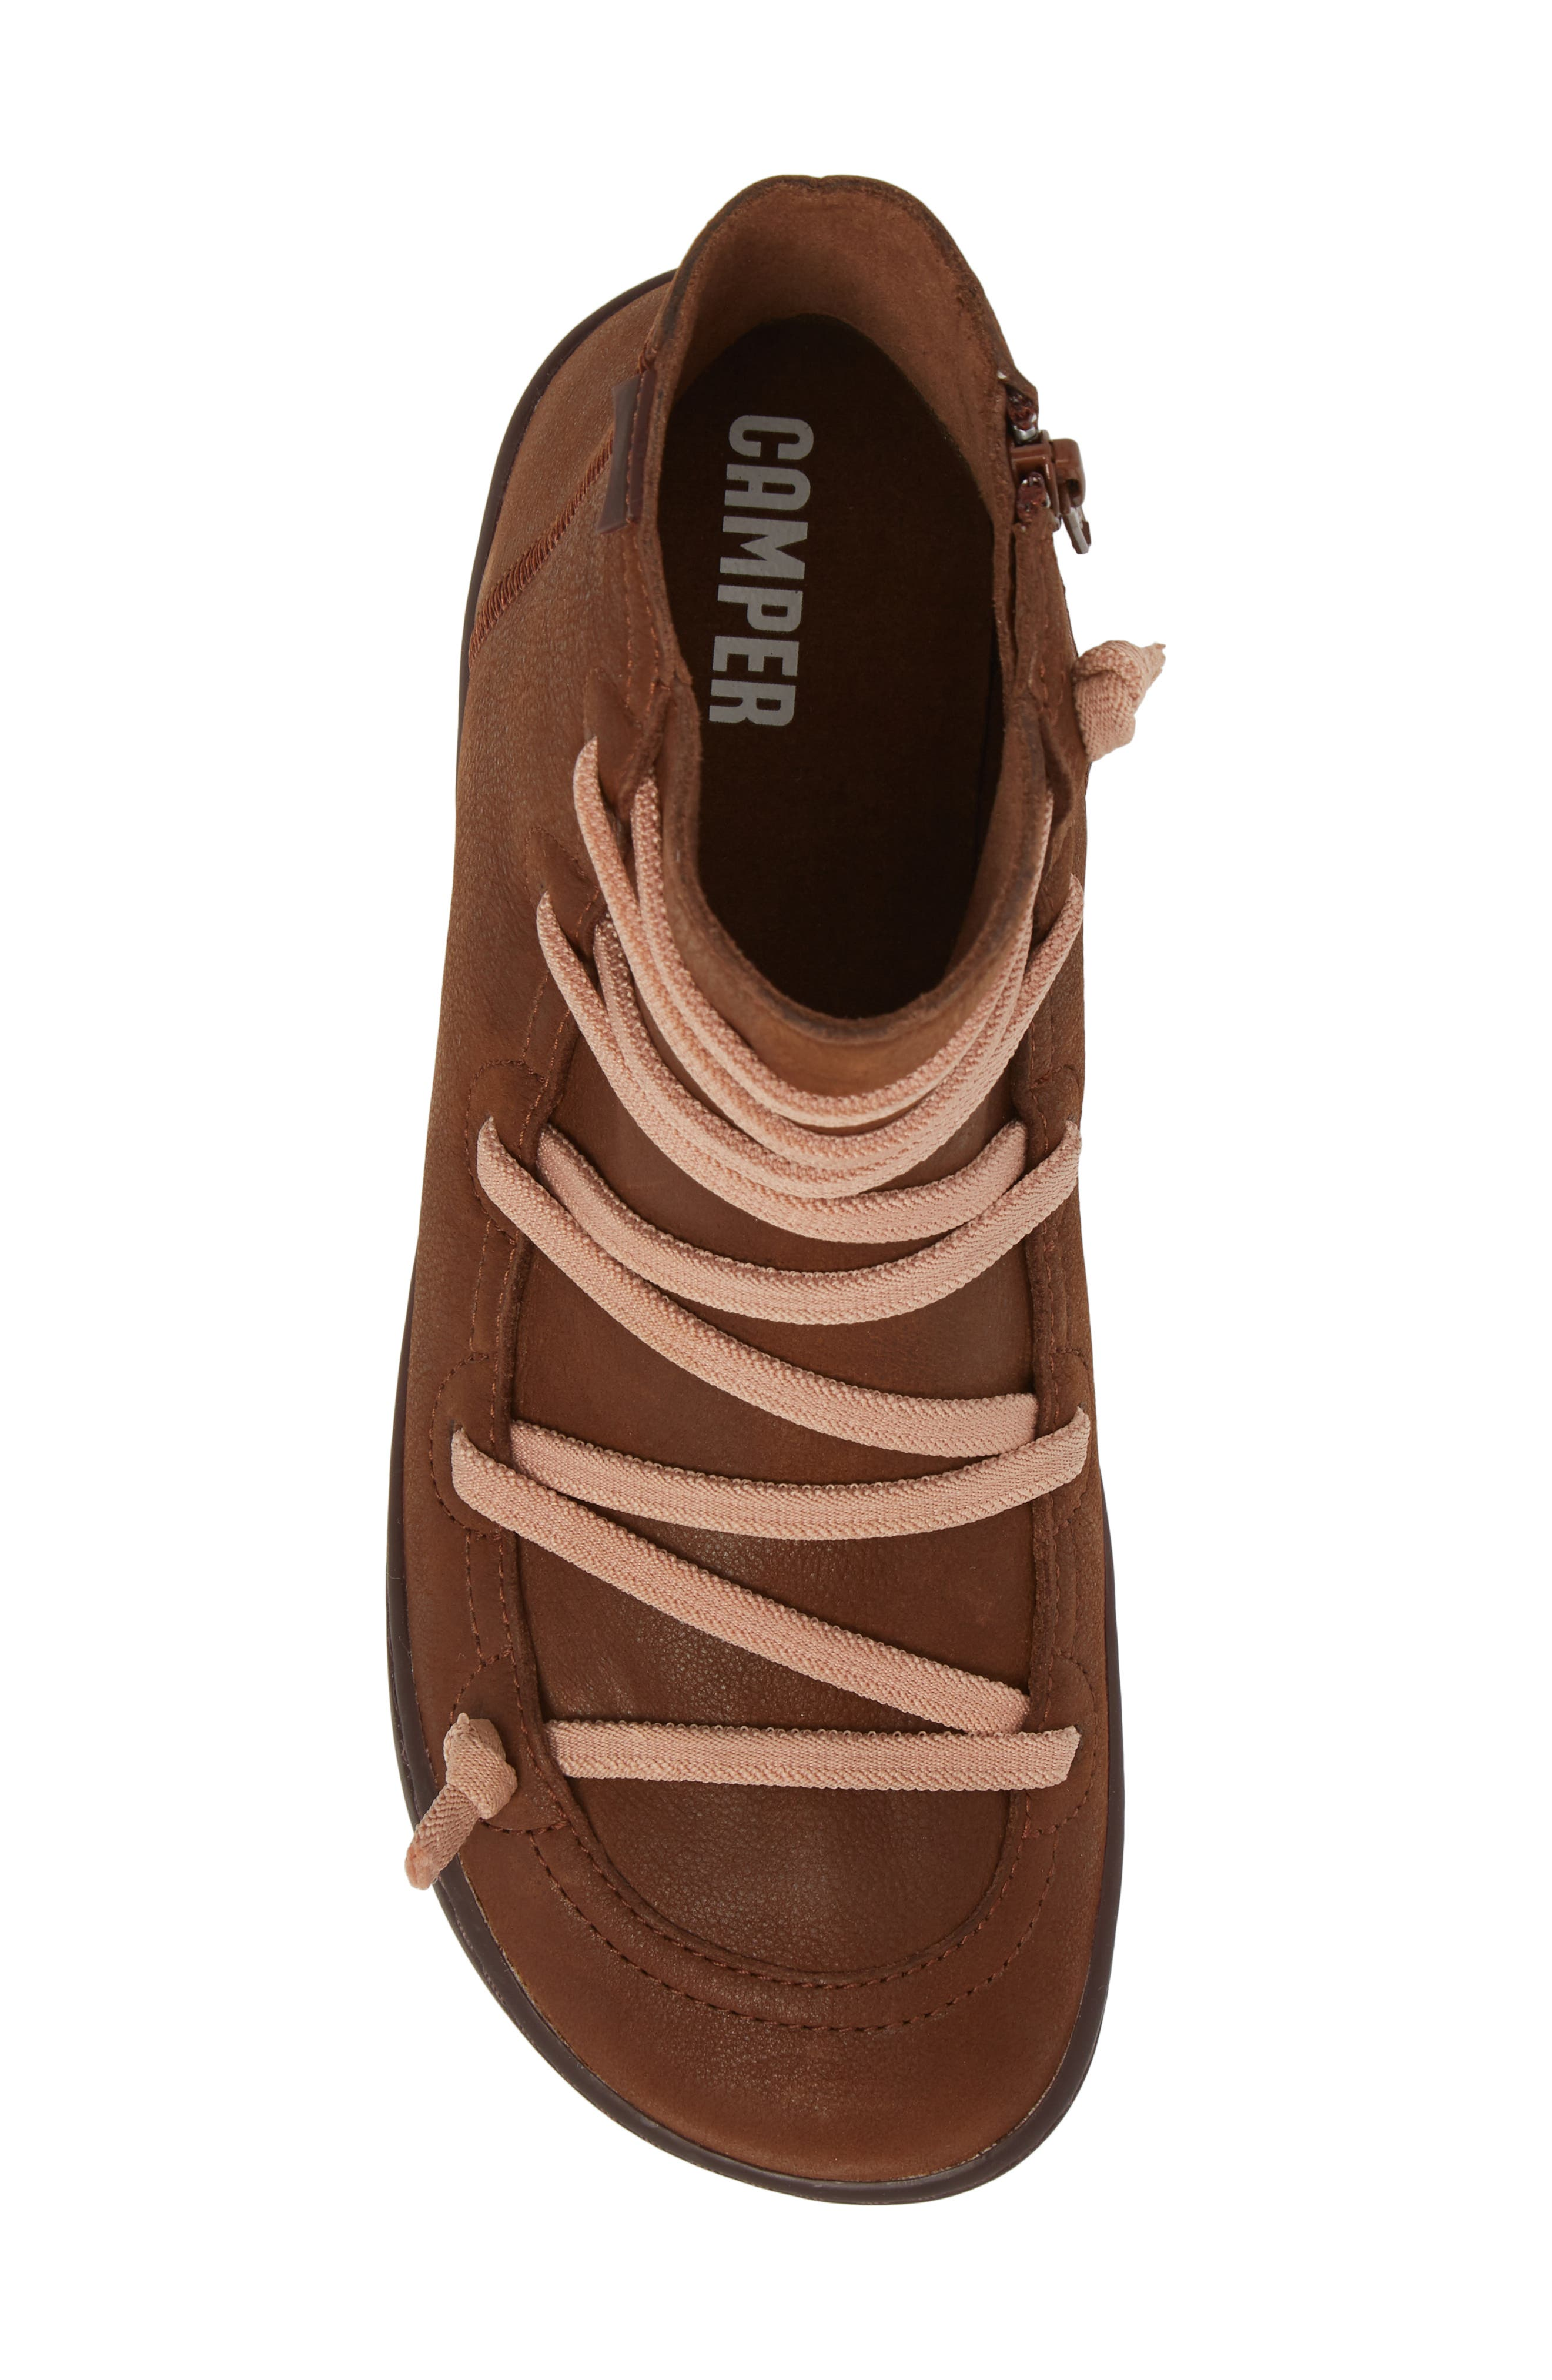 CAMPER,                             Peu Cami Bootie,                             Alternate thumbnail 5, color,                             MEDIUM BROWN LEATHER